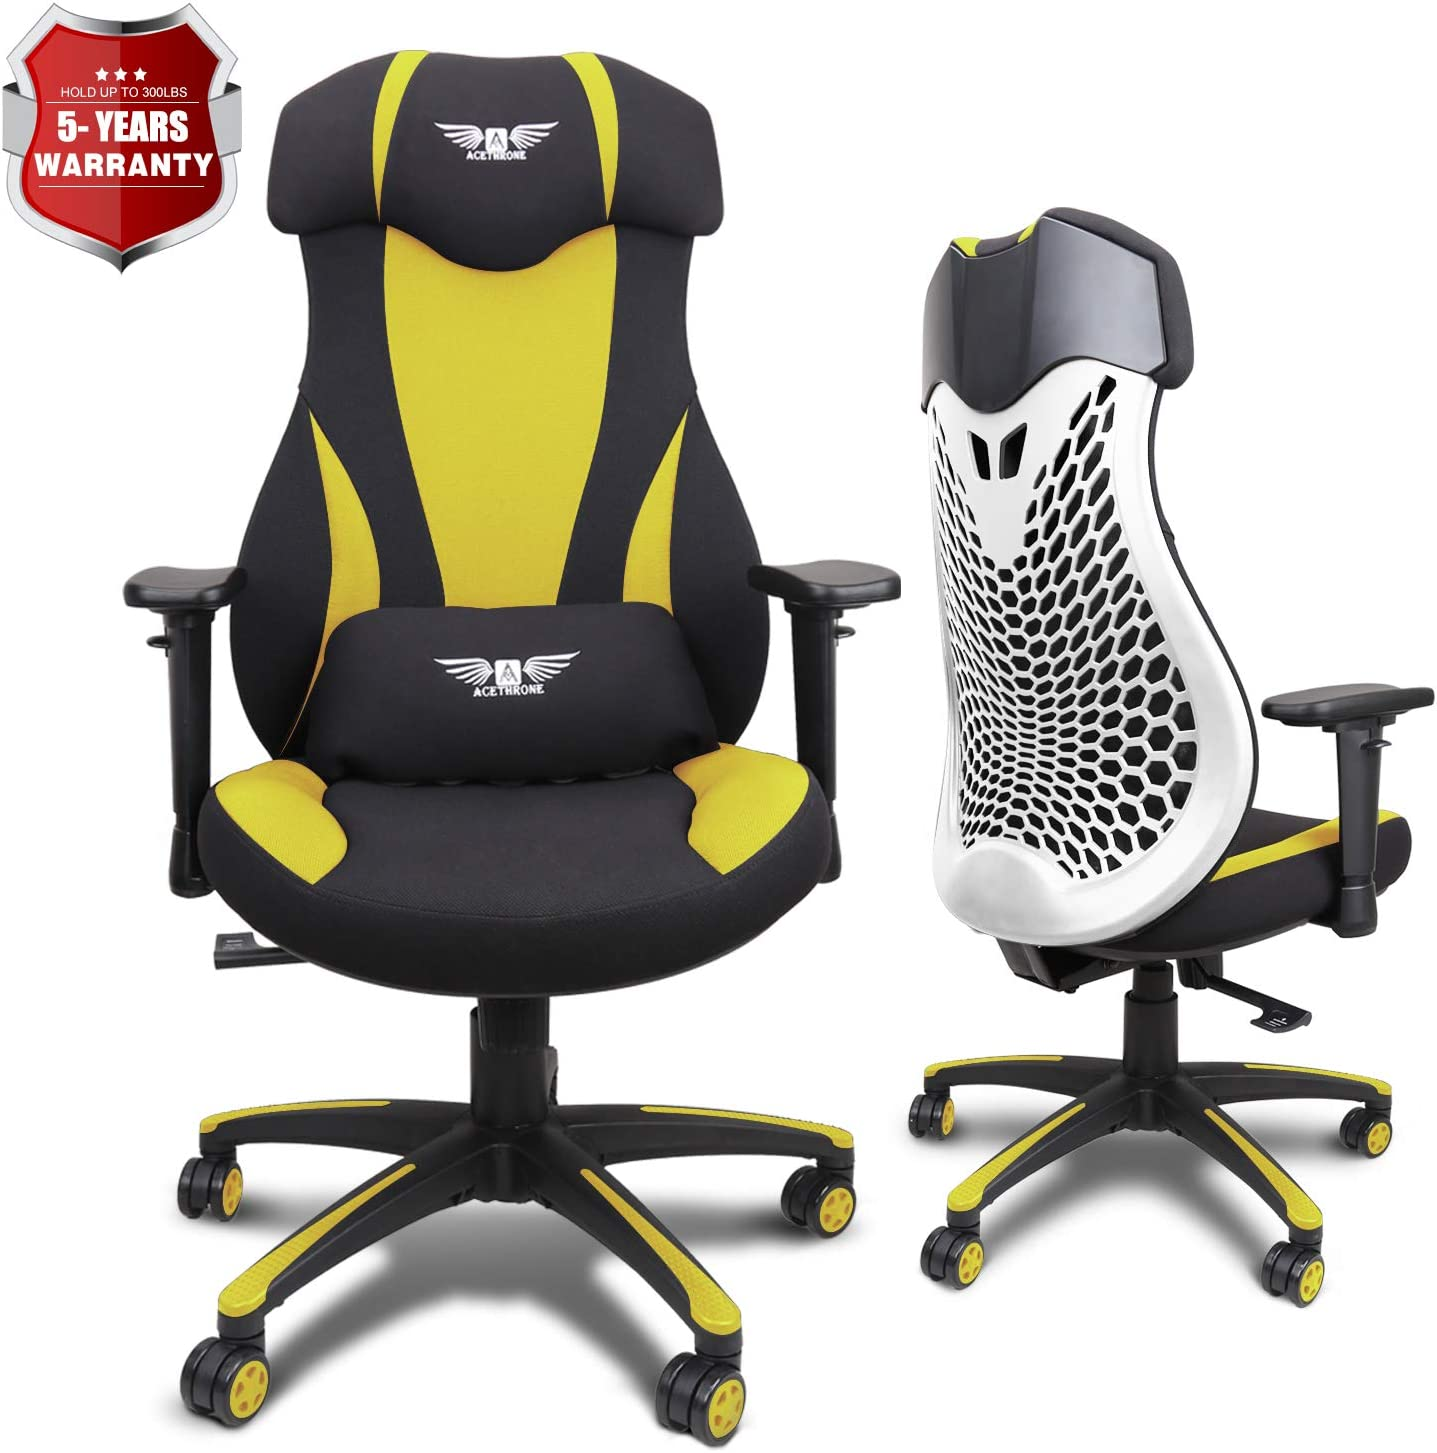 Acethrone PC Gaming Chair Ergonomic Office Chair Desk Chair with Lift Headrest and Armrests, Flexible Adjustable Height and Reclining Device (Yellow)